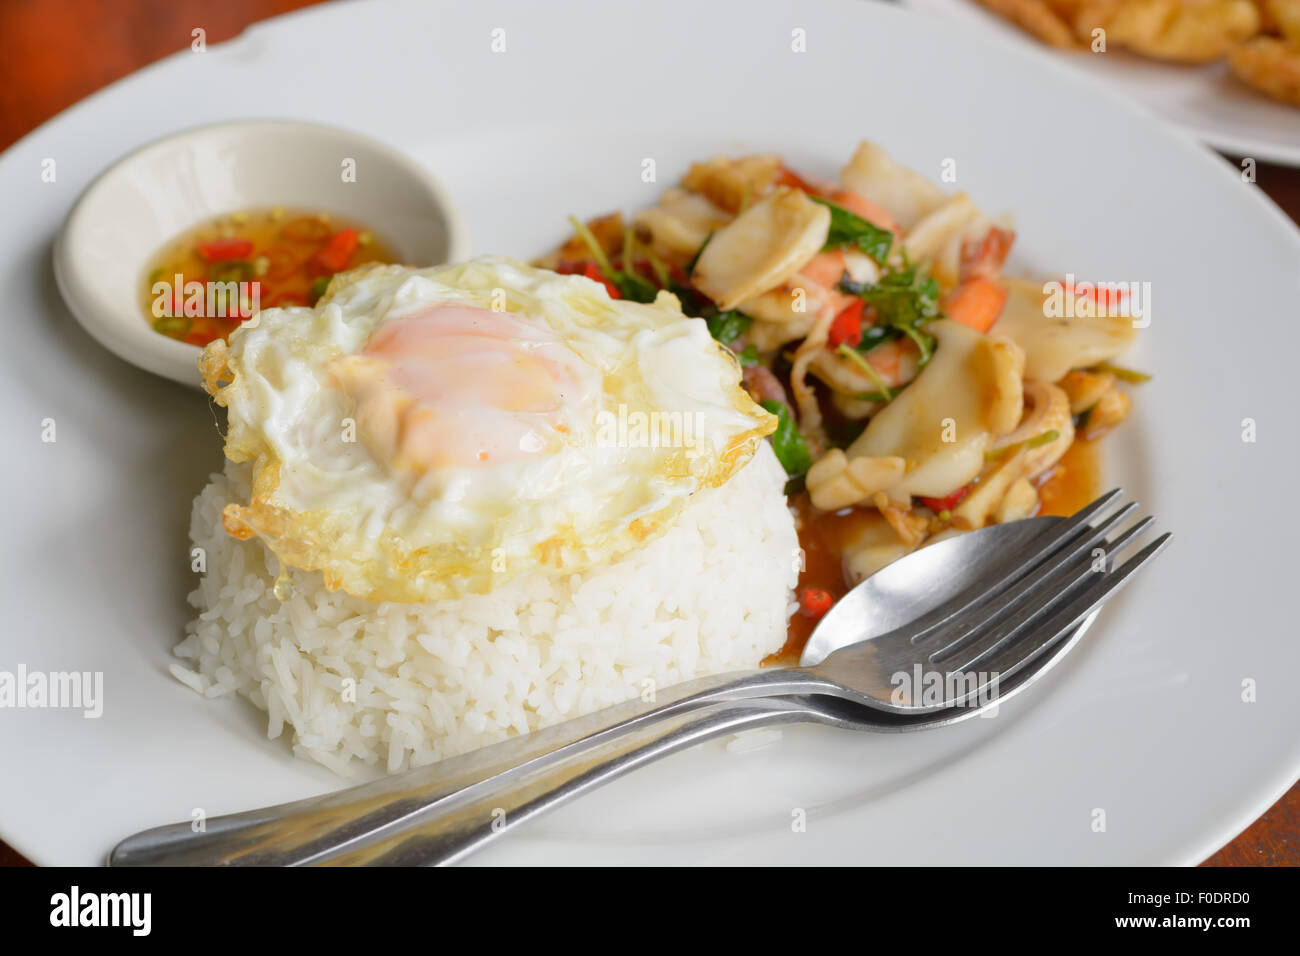 Steamed rice Fried basil leaves with mixed seafood and topped with fried egg - Stock Image